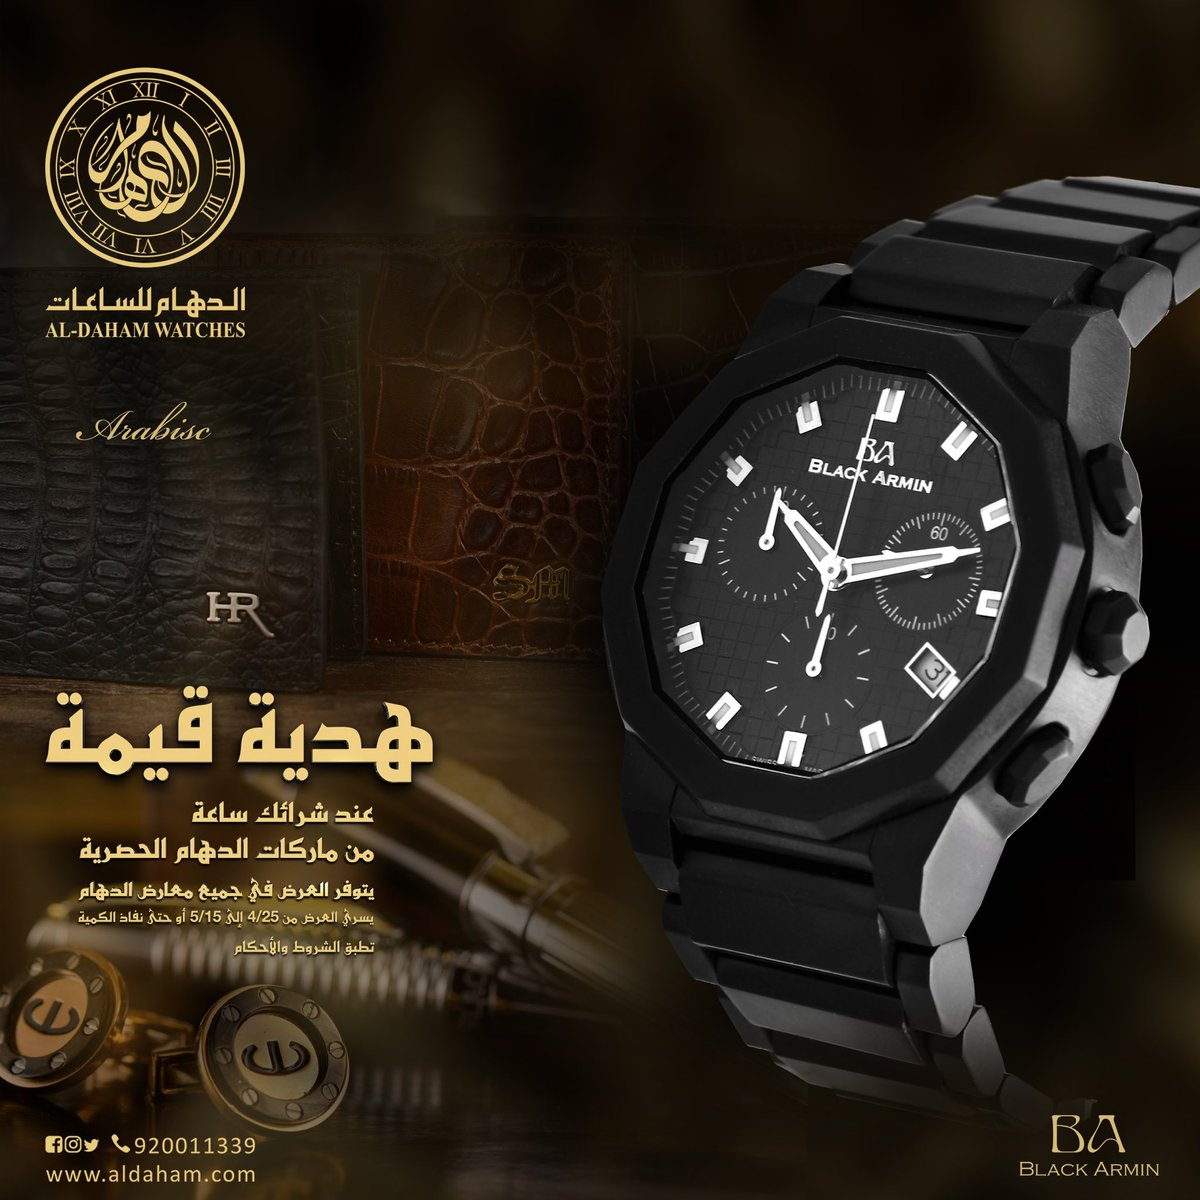 10e3cdff22055 الدهام للساعات ( ALDAHAM WATCHES)